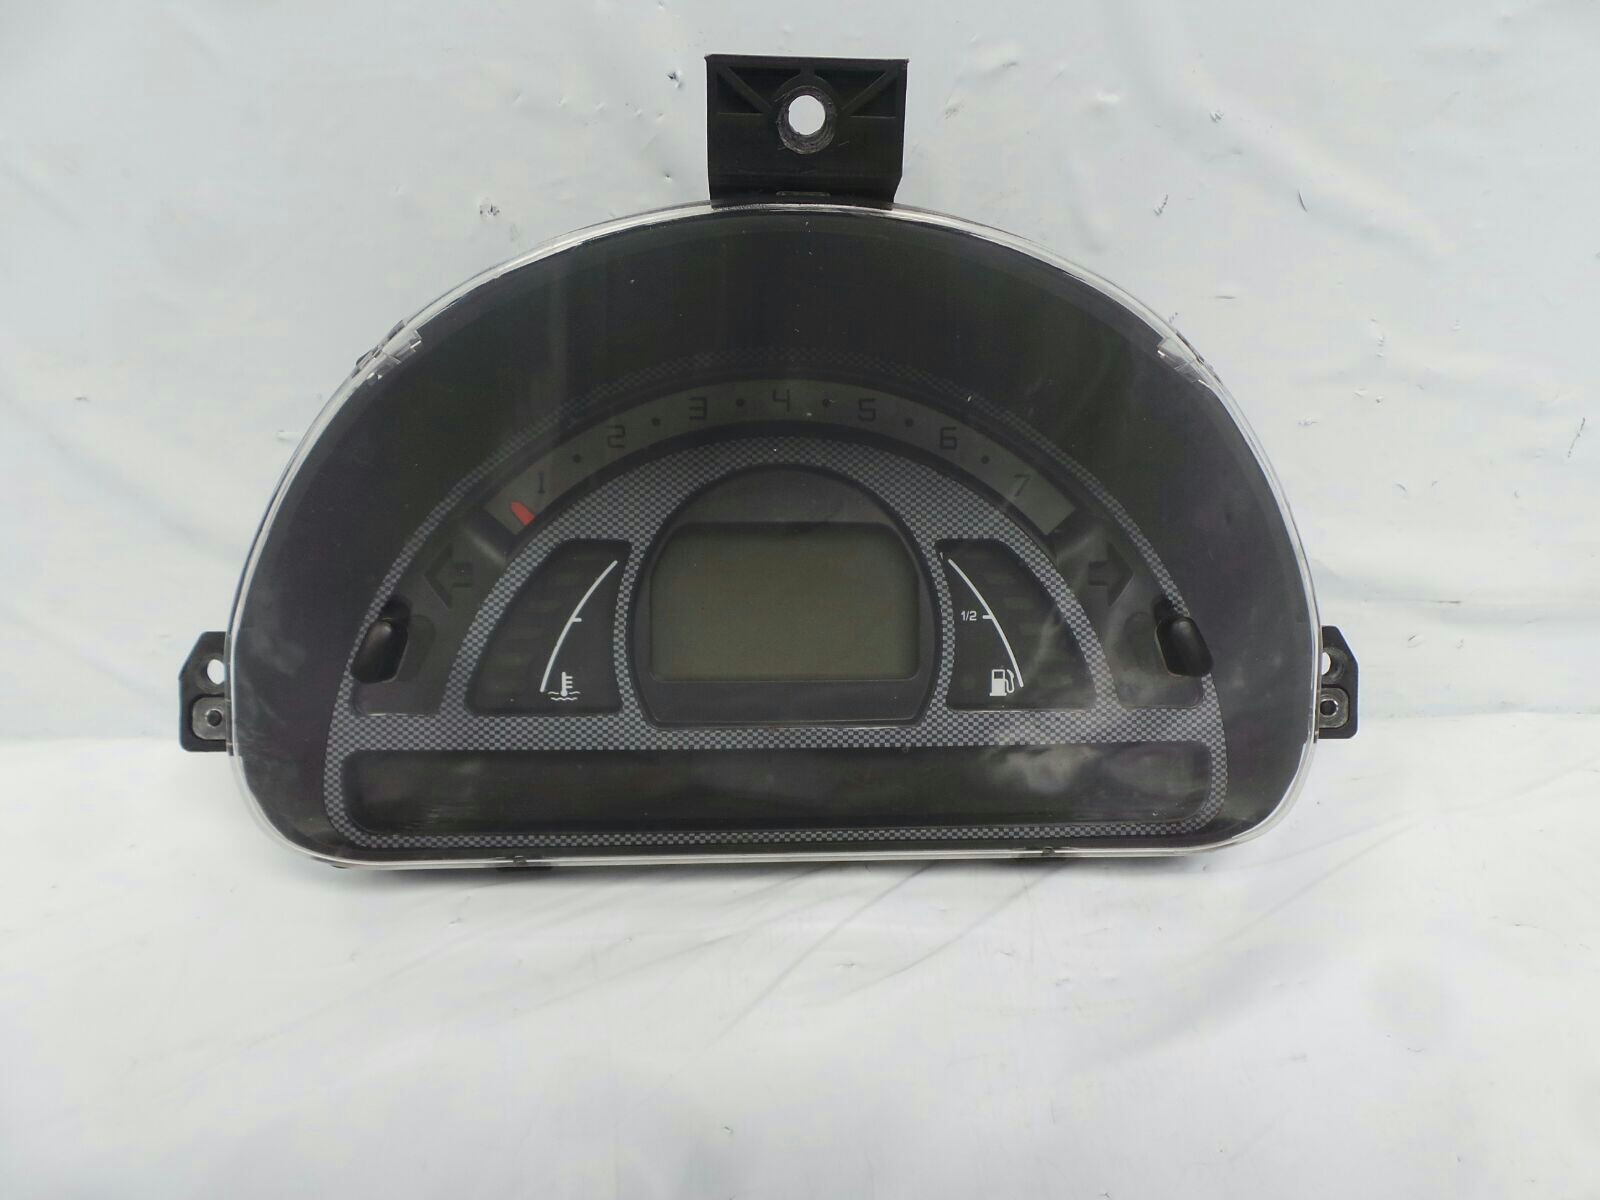 Citroen C2 2003 To 2008 Furio Instrument Cluster